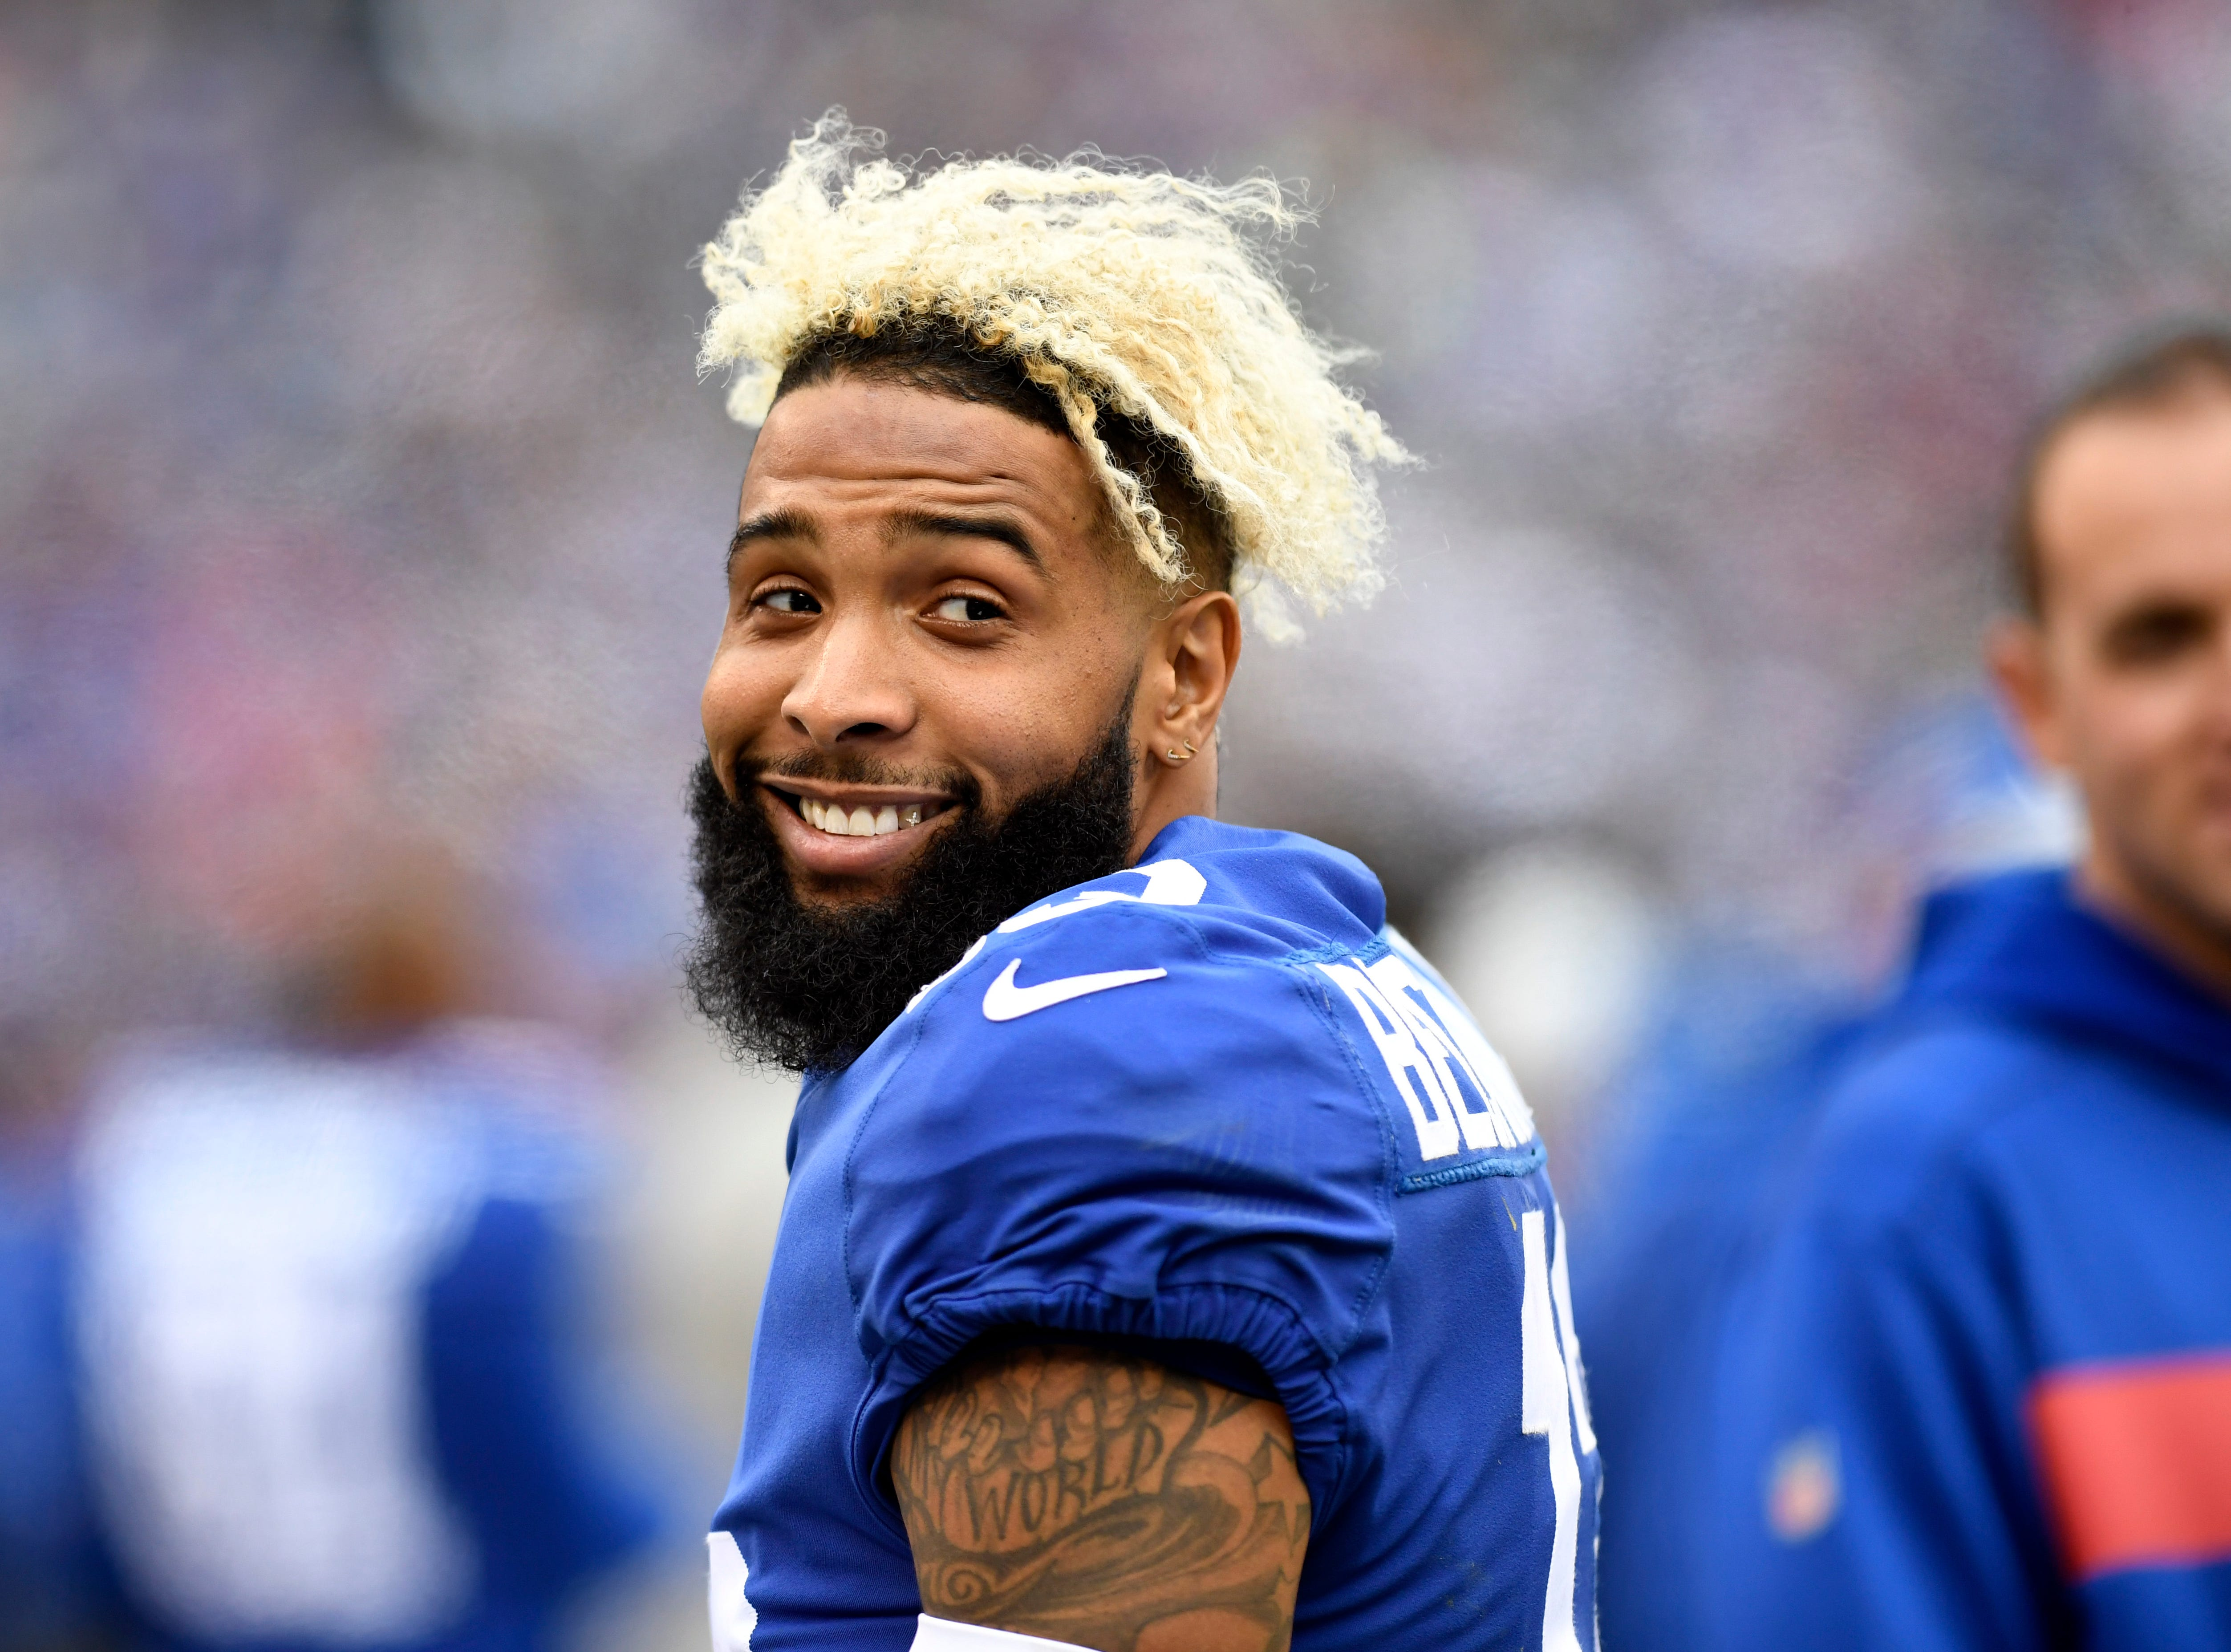 New York Giants wide receiver Odell Beckham Jr. (13) smiles at a photographer in the first half on Sunday, Oct. 28, 2018, in East Rutherford.